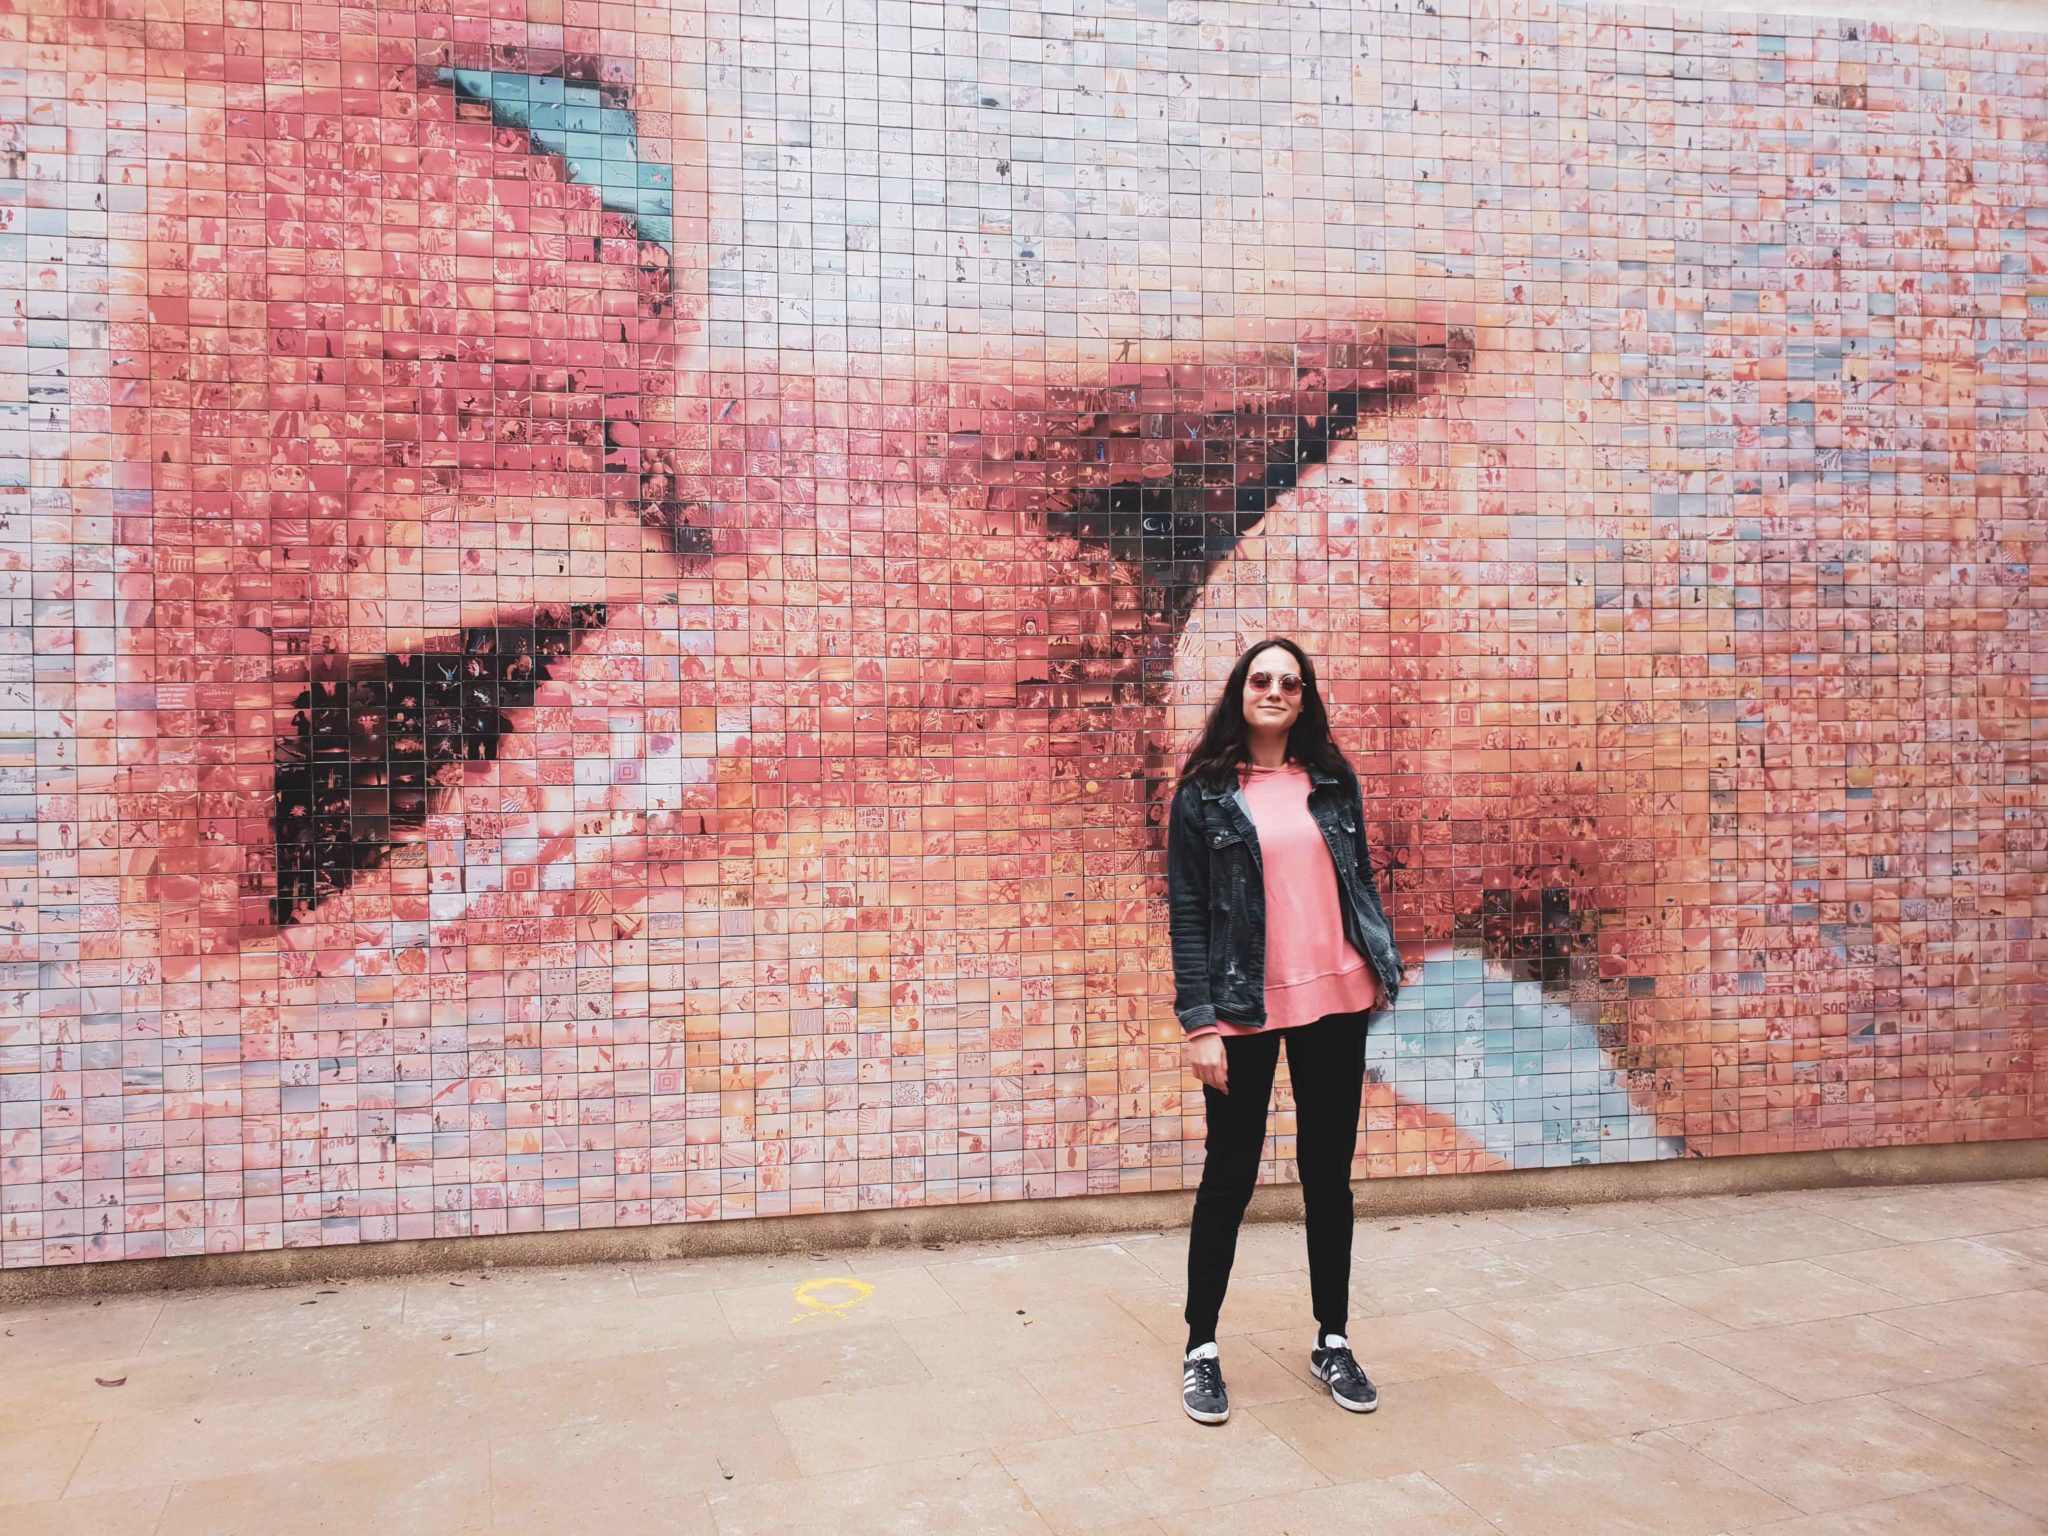 Barcelona travel guide by Michaella and Lina from Bulgarian lifestyle blog Quite a Looker / Kiss street art